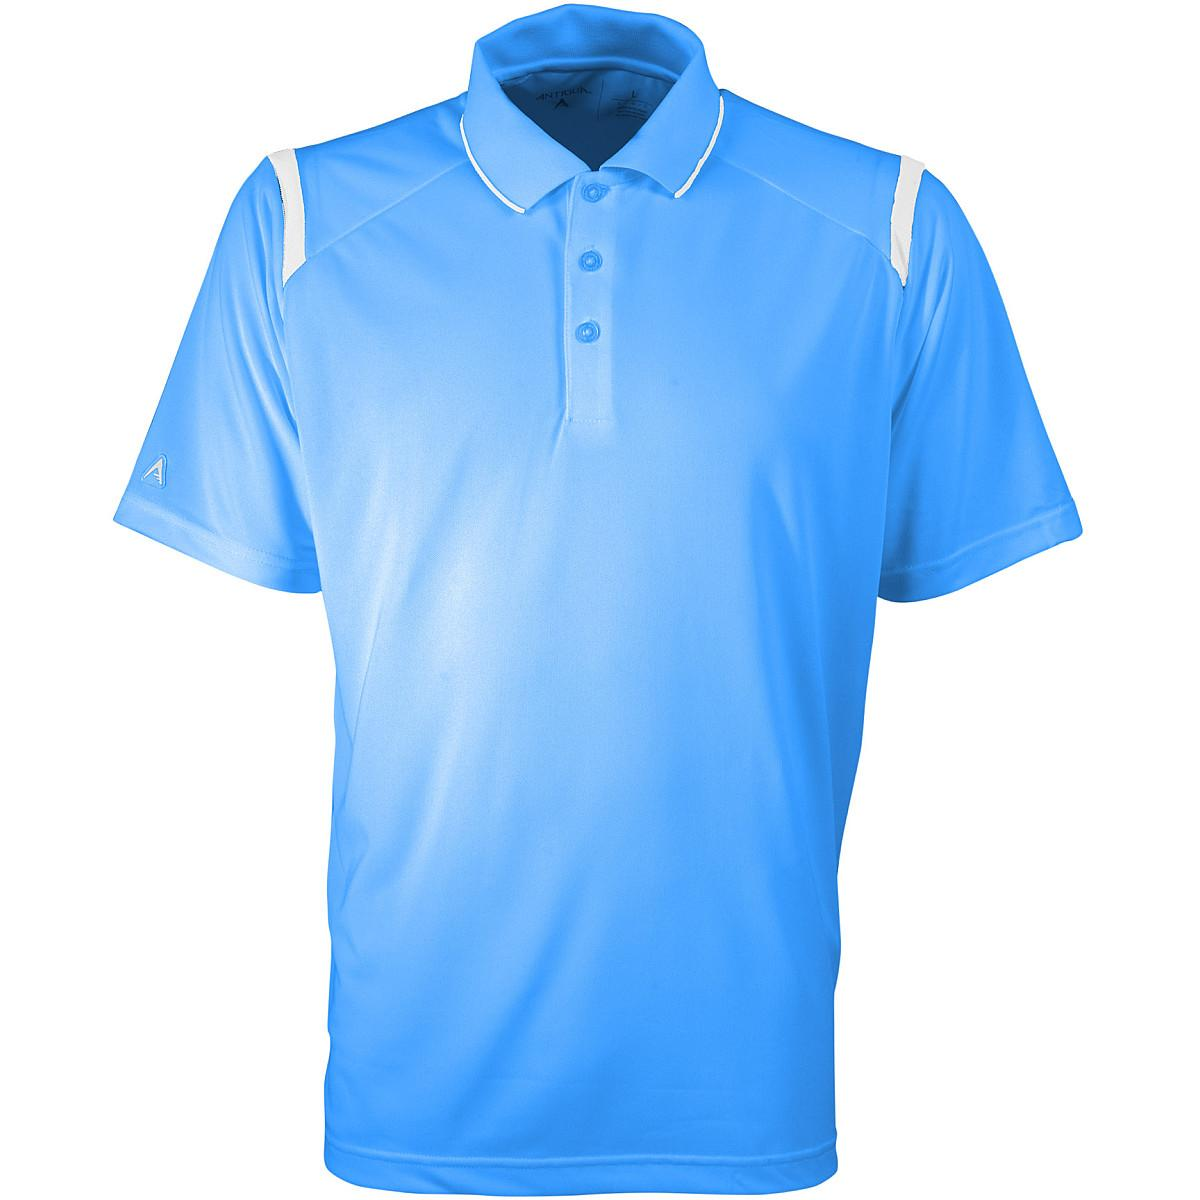 Antigua Men s Merit Polo Shirt L Columbia Blue white. About this product.  Picture 1 of 2  Picture 2 of 2 0c553c3de